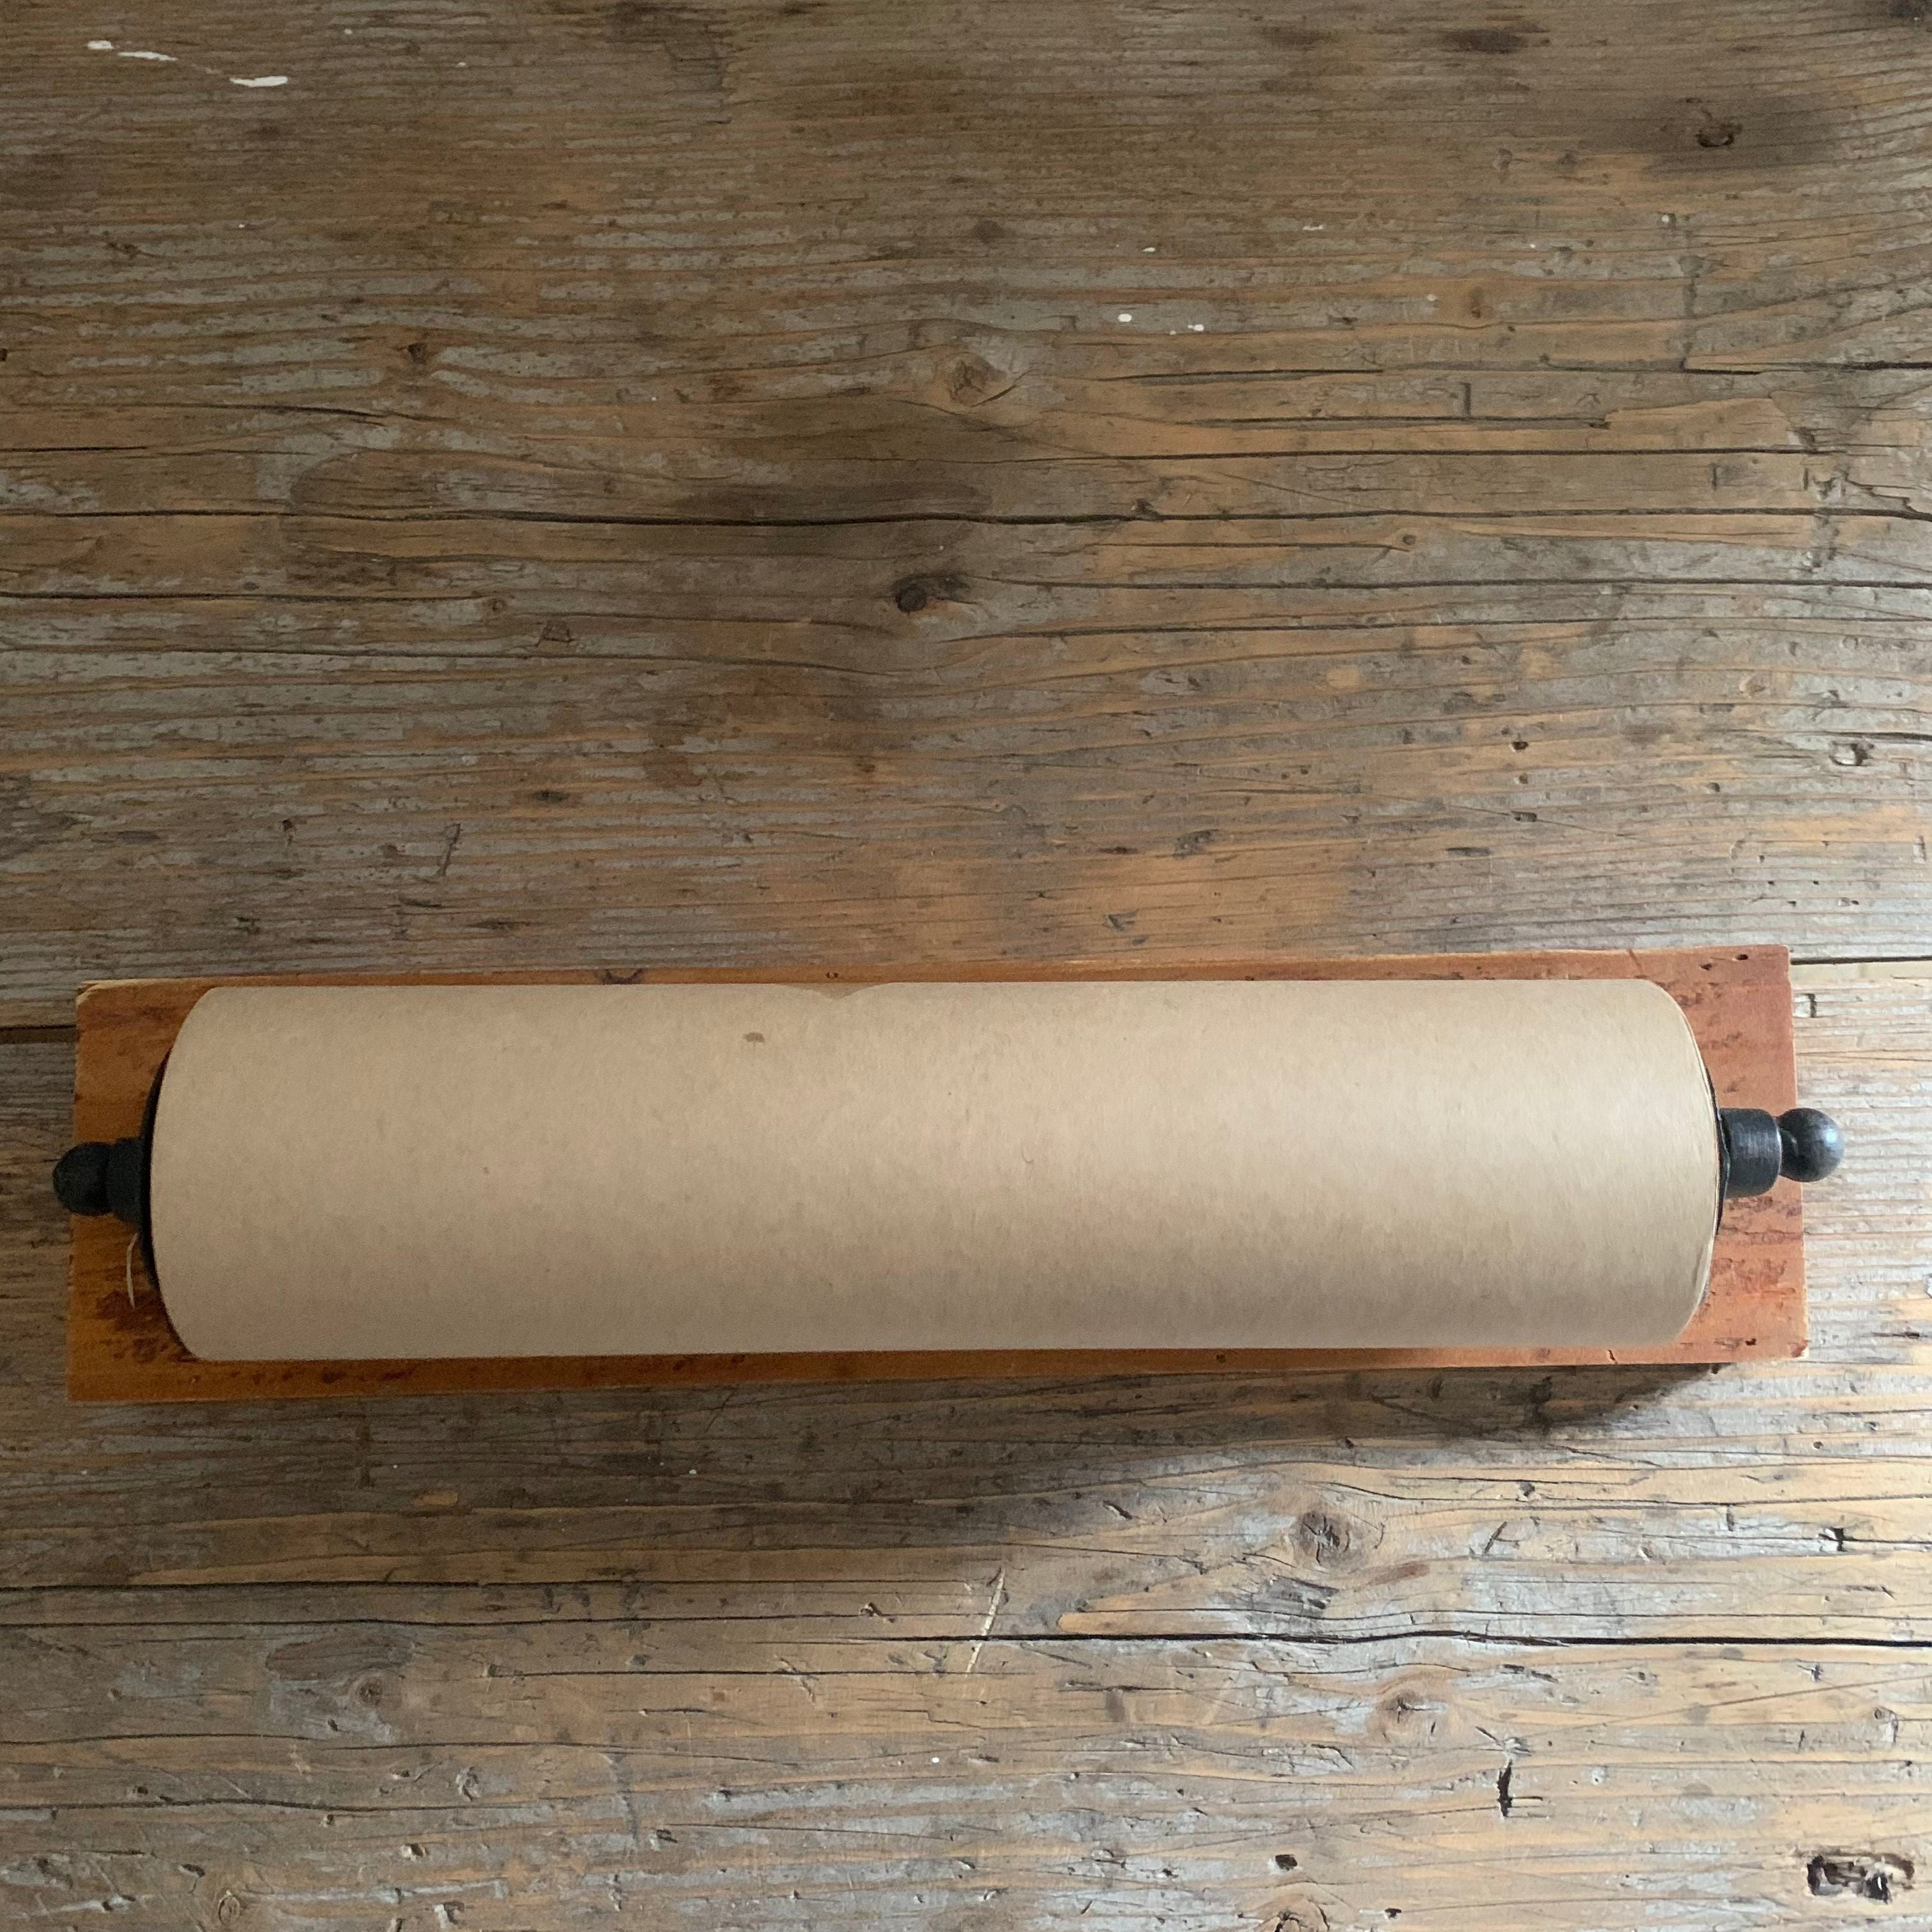 paper mount with paper roll